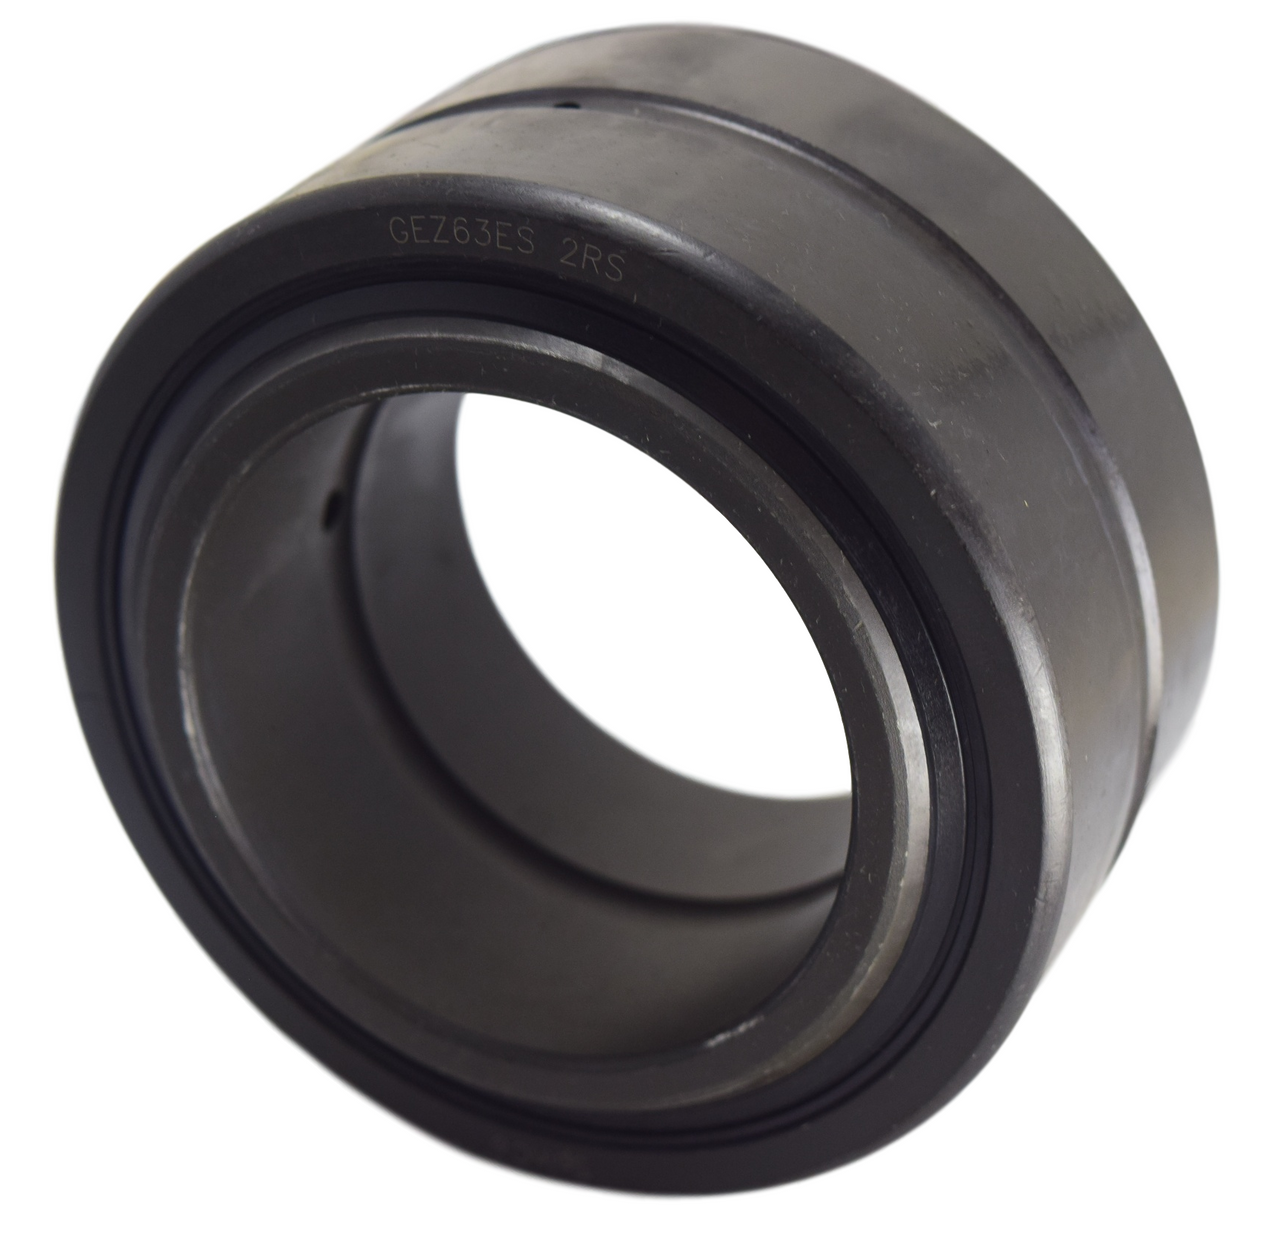 "GEZ63ES-2RS 2-1/2"" Sealed Spherical Plain Bearing Image"